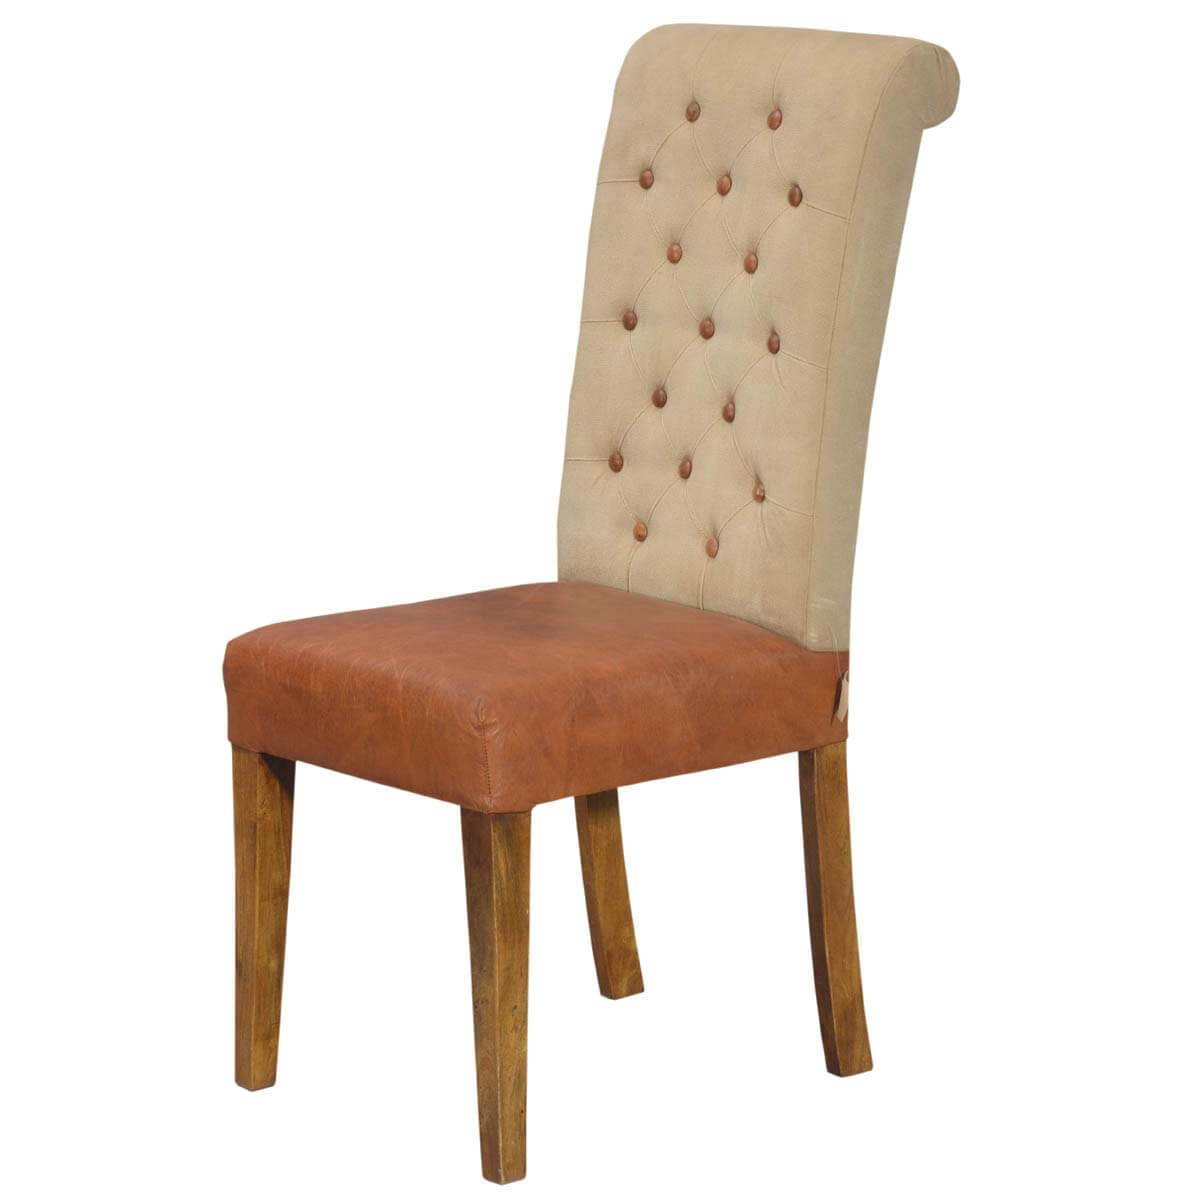 Ultra Stylish Leather and Fabric Tufted Parson Chair